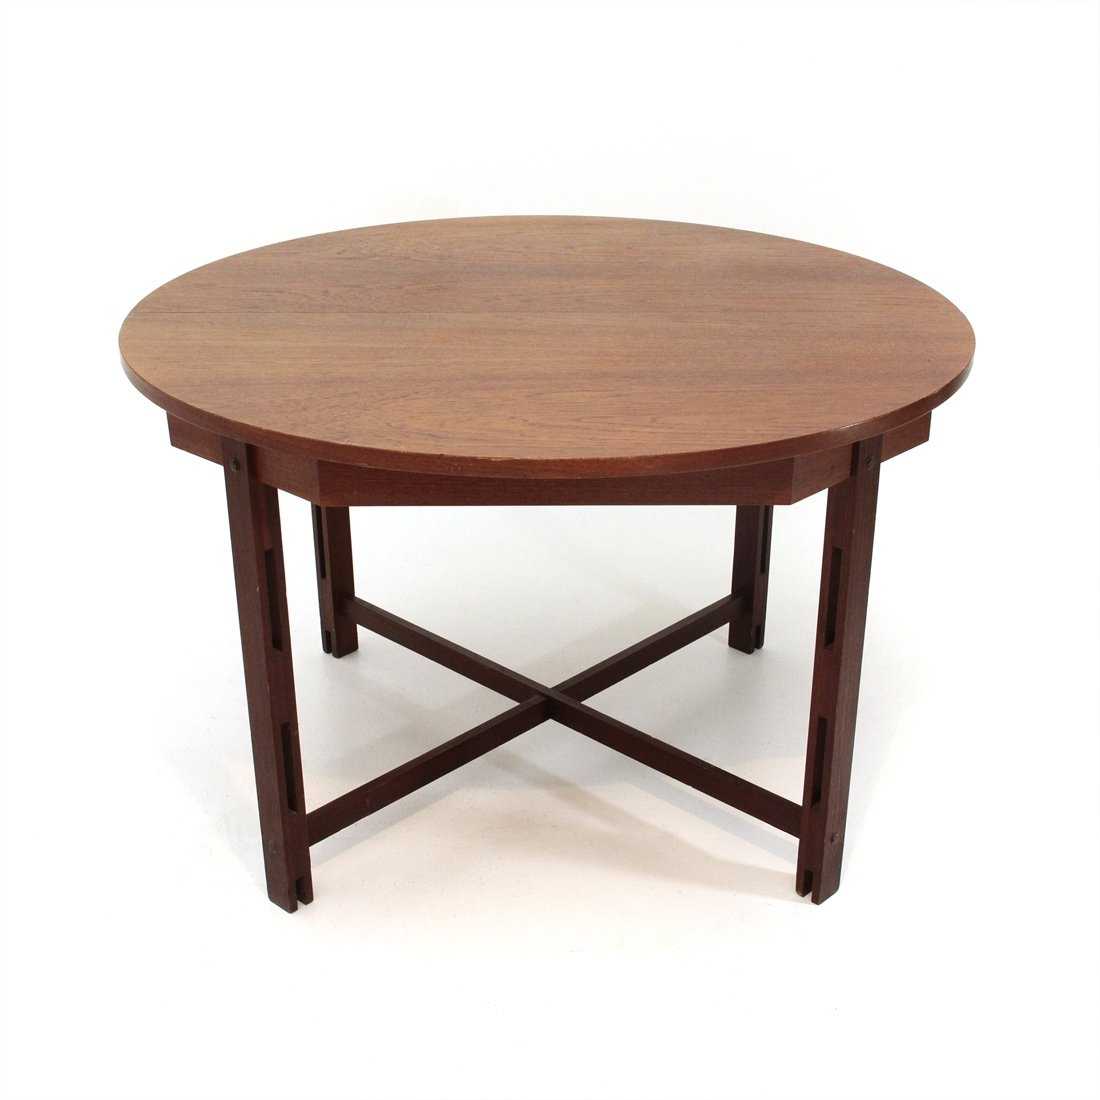 Picture of: Mid Century Modern Dining Table With Circular Top 1960s 91075